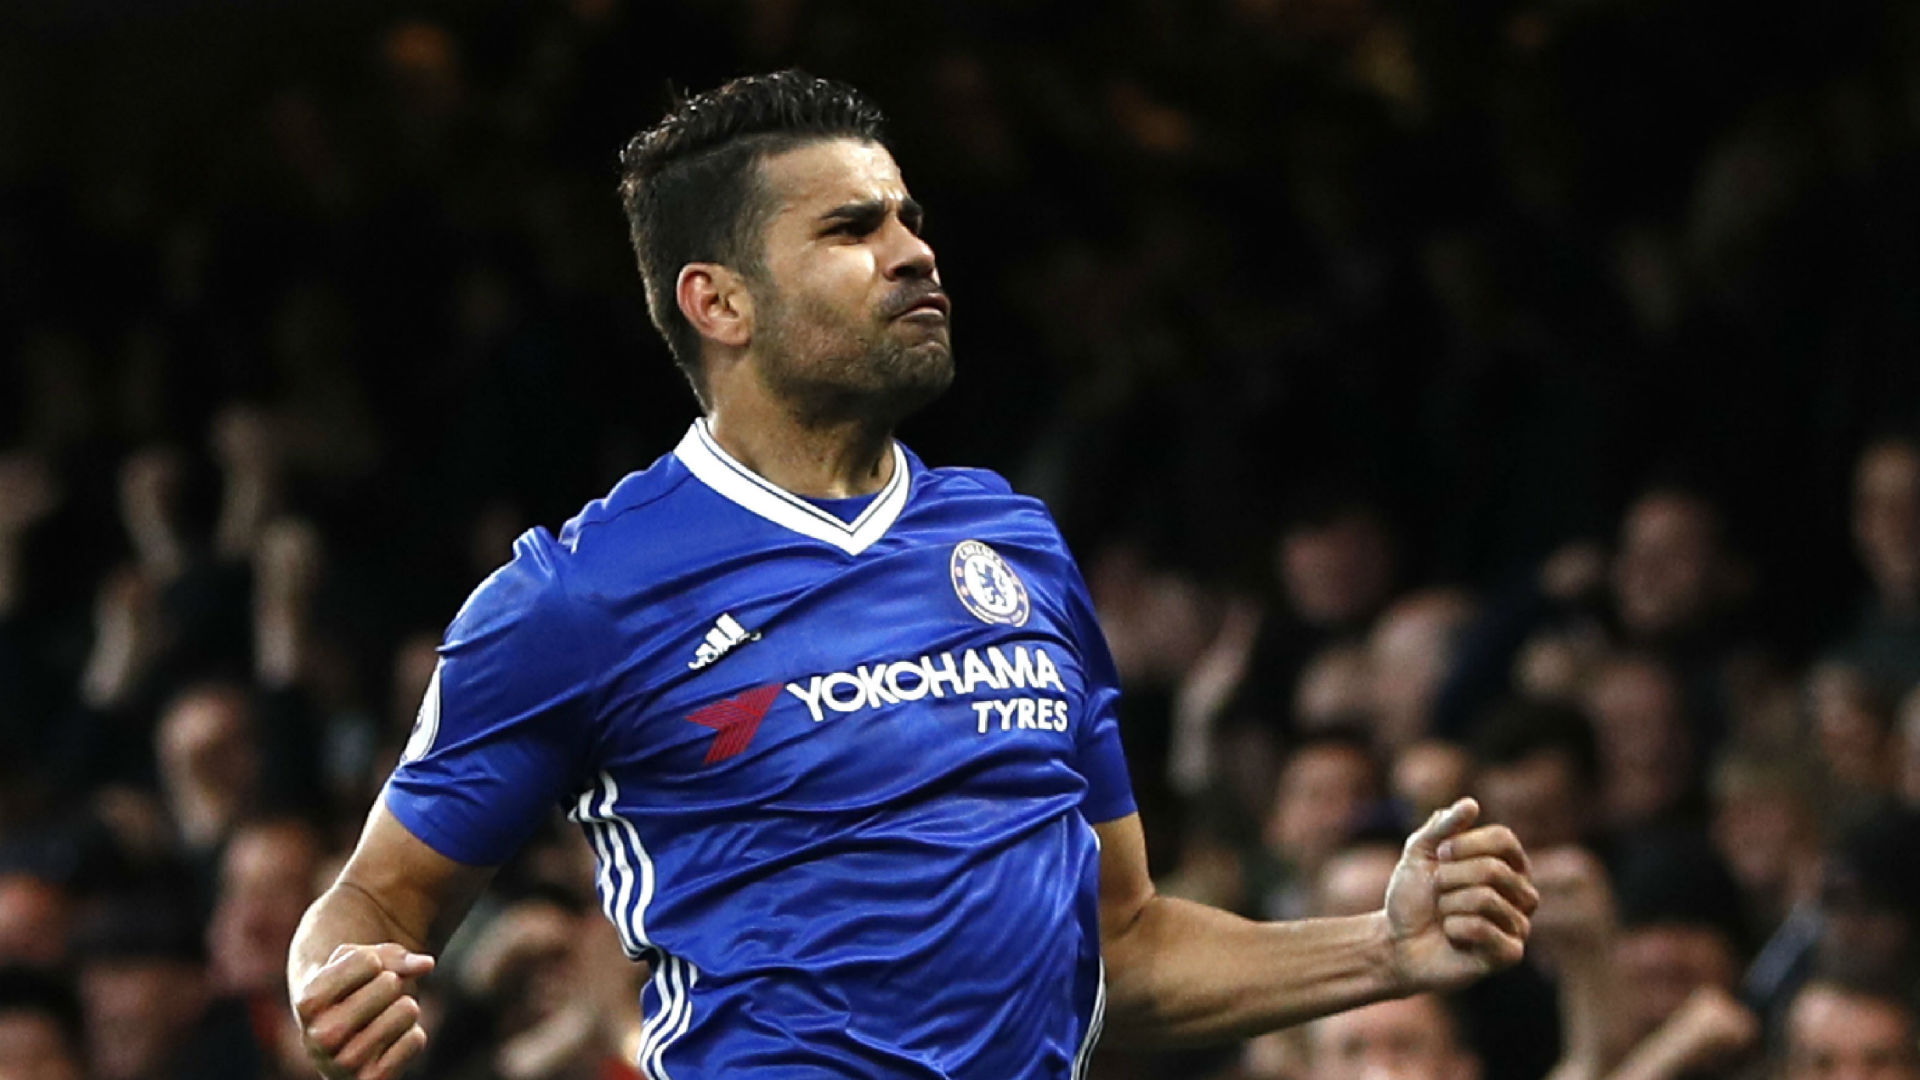 Diego Costa may not play in China next season, says Sky